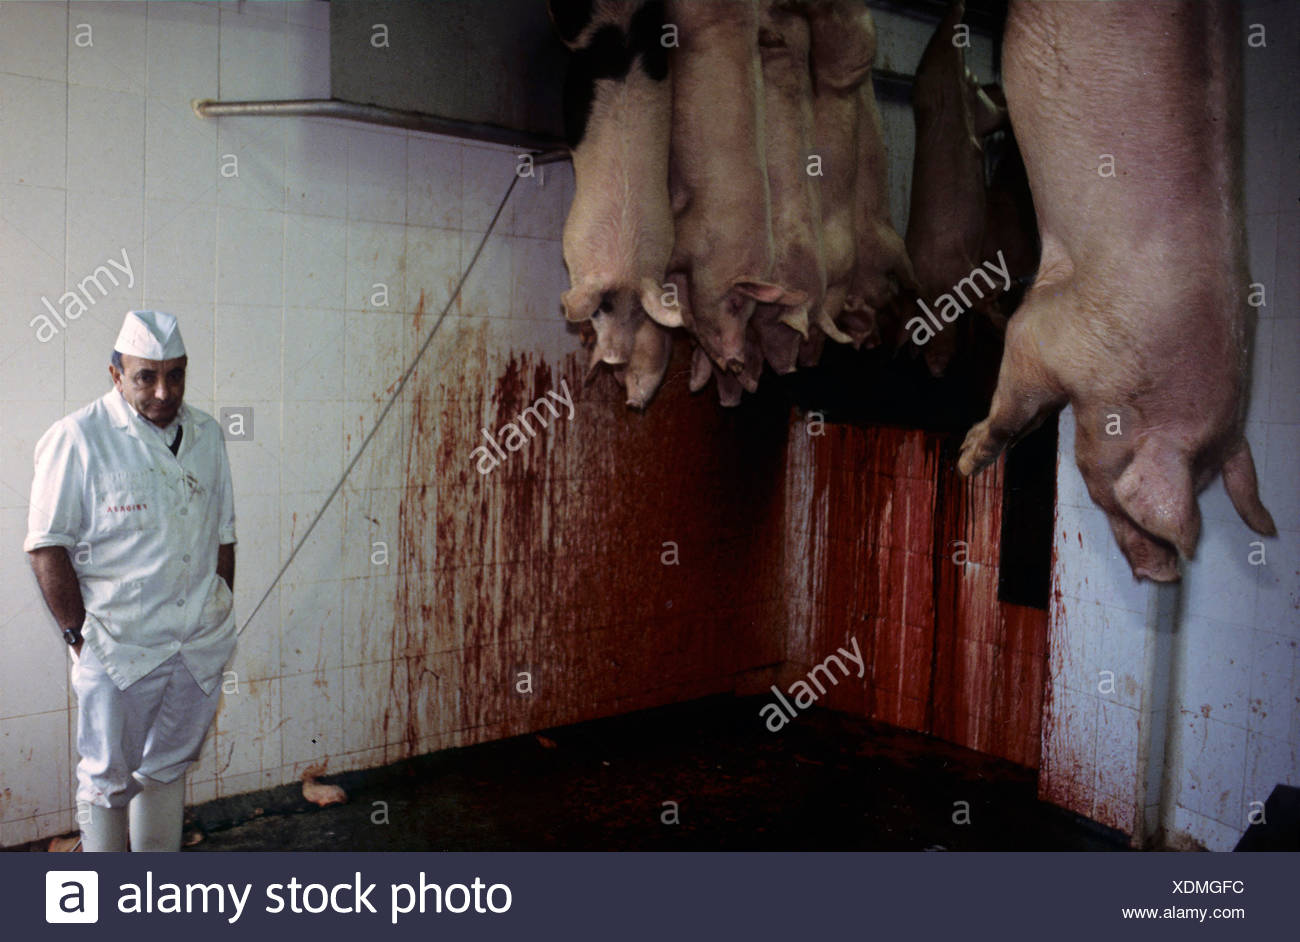 Pig carcasses hanging in a slaughter house. - Stock Image